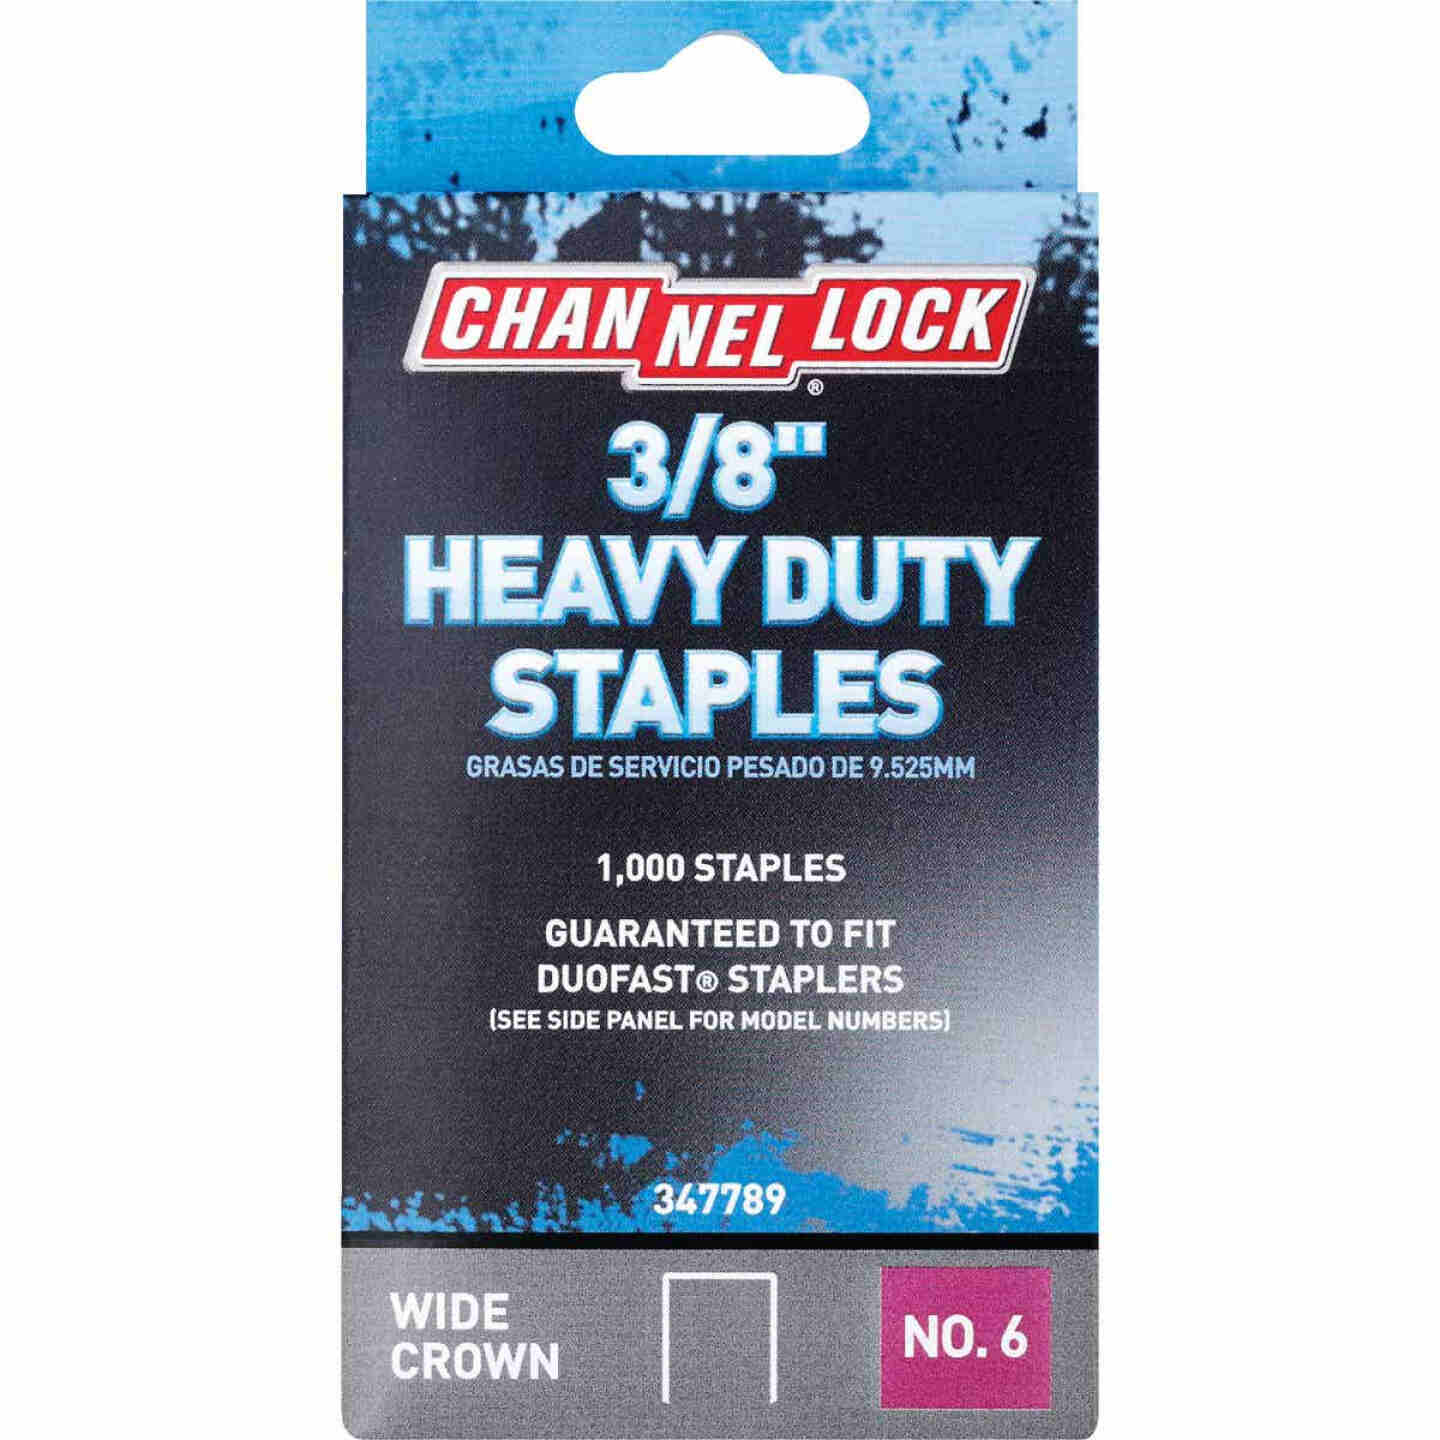 Channellock No. 6 Heavy-Duty Wide Crown Staple, 3/8 In. (1000-Pack) Image 1